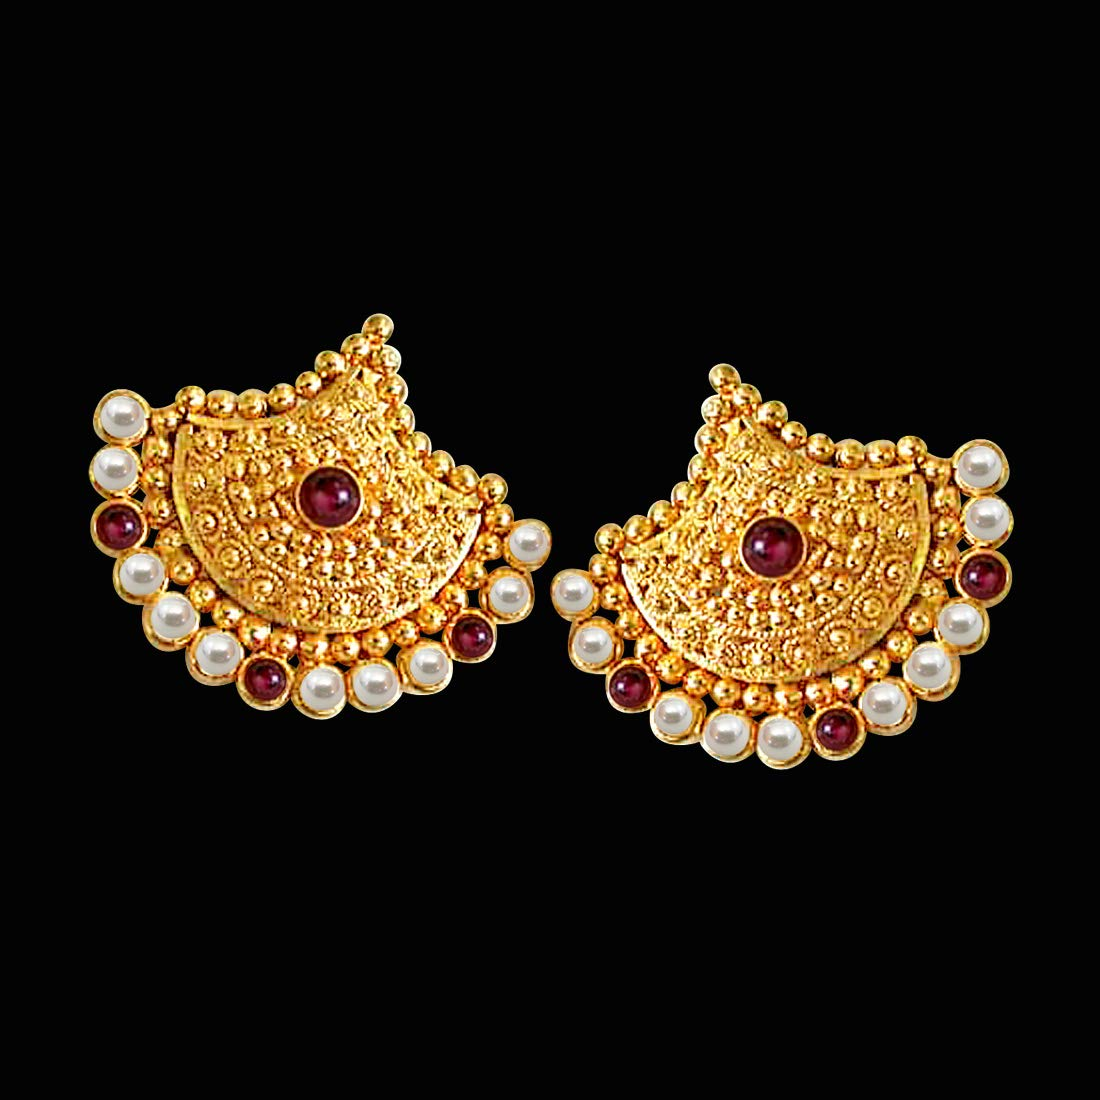 Pretty Lady's Pearl - Real Freshwater Pearl & Red Garnet Beads Geometrical Shaped Earring for Women (SE59)